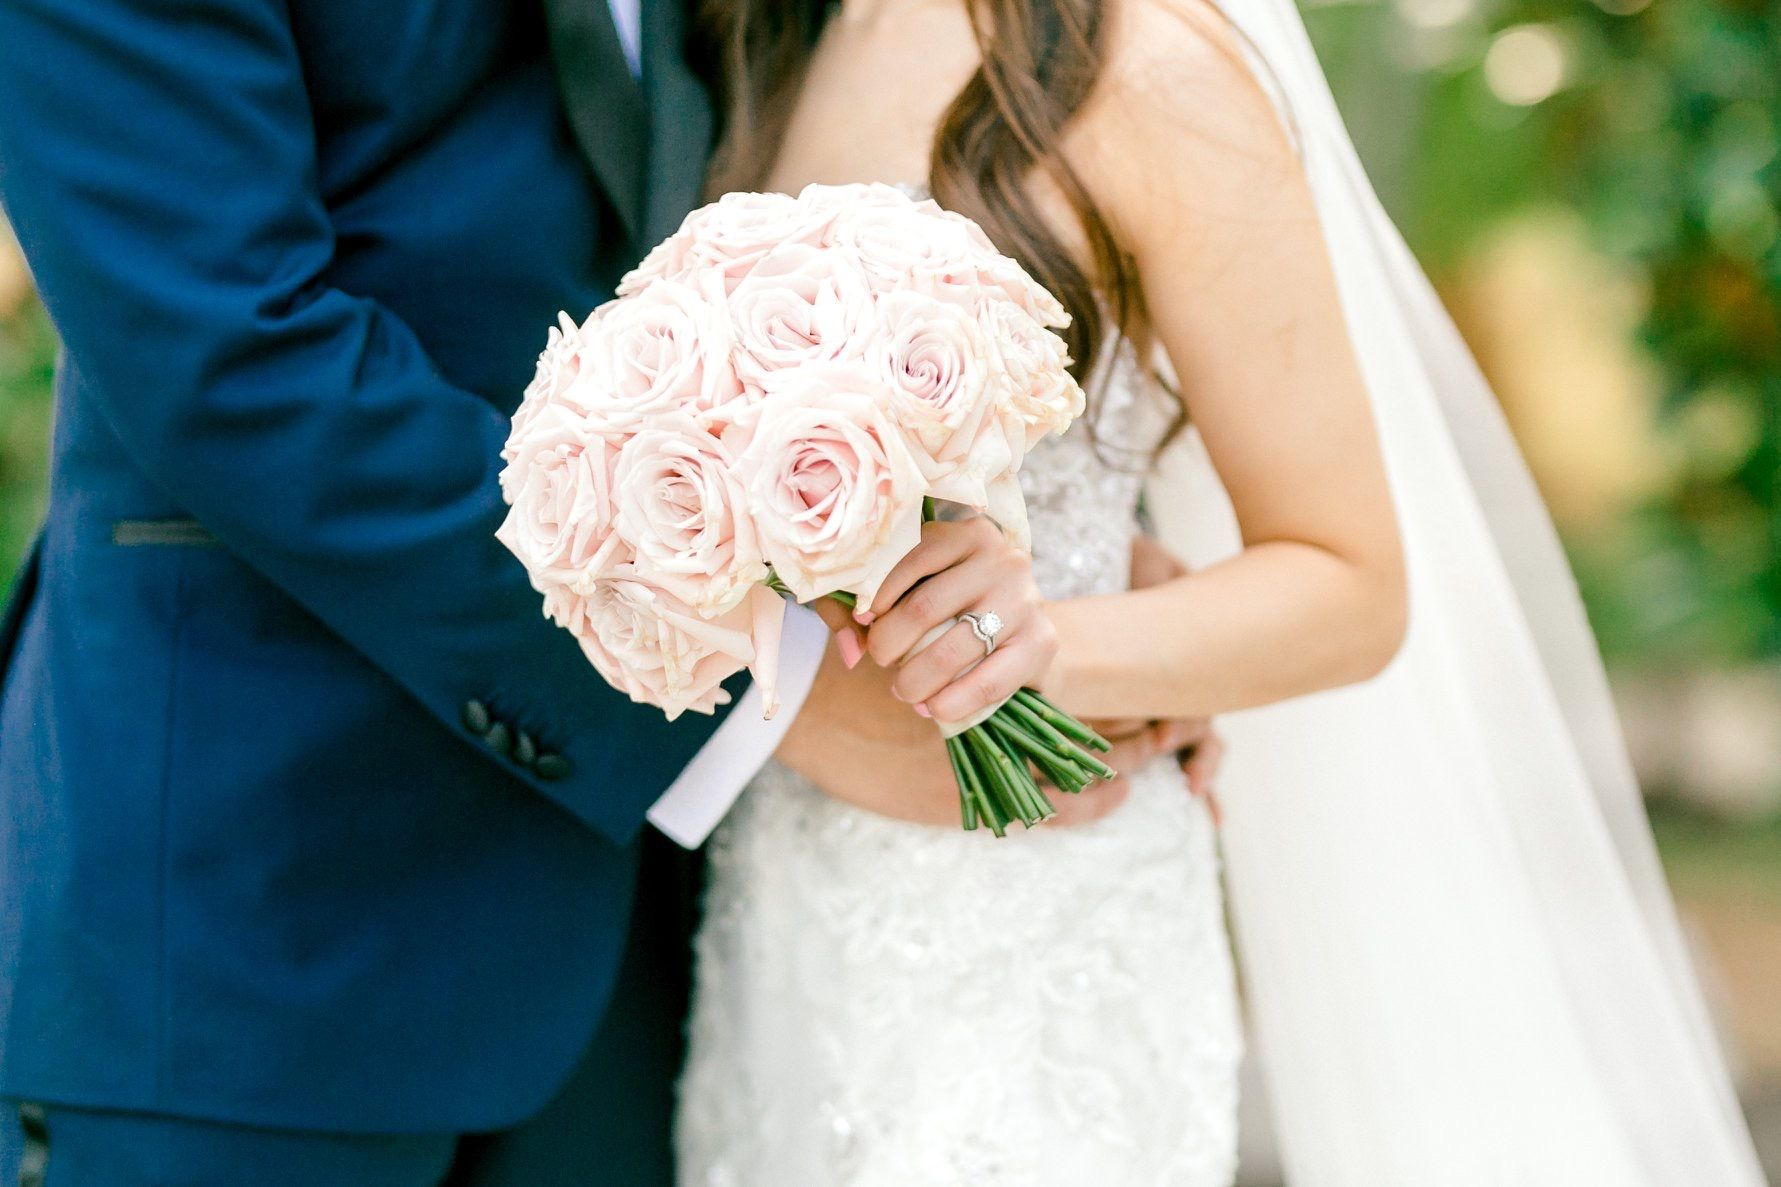 Sherpa Floral Rental Is Rent And Returns A Floral Company We Use High Quality Silk Floral Wh Blue Wedding Bouquet Wedding Bouquets Pink Summer Wedding Bouquets